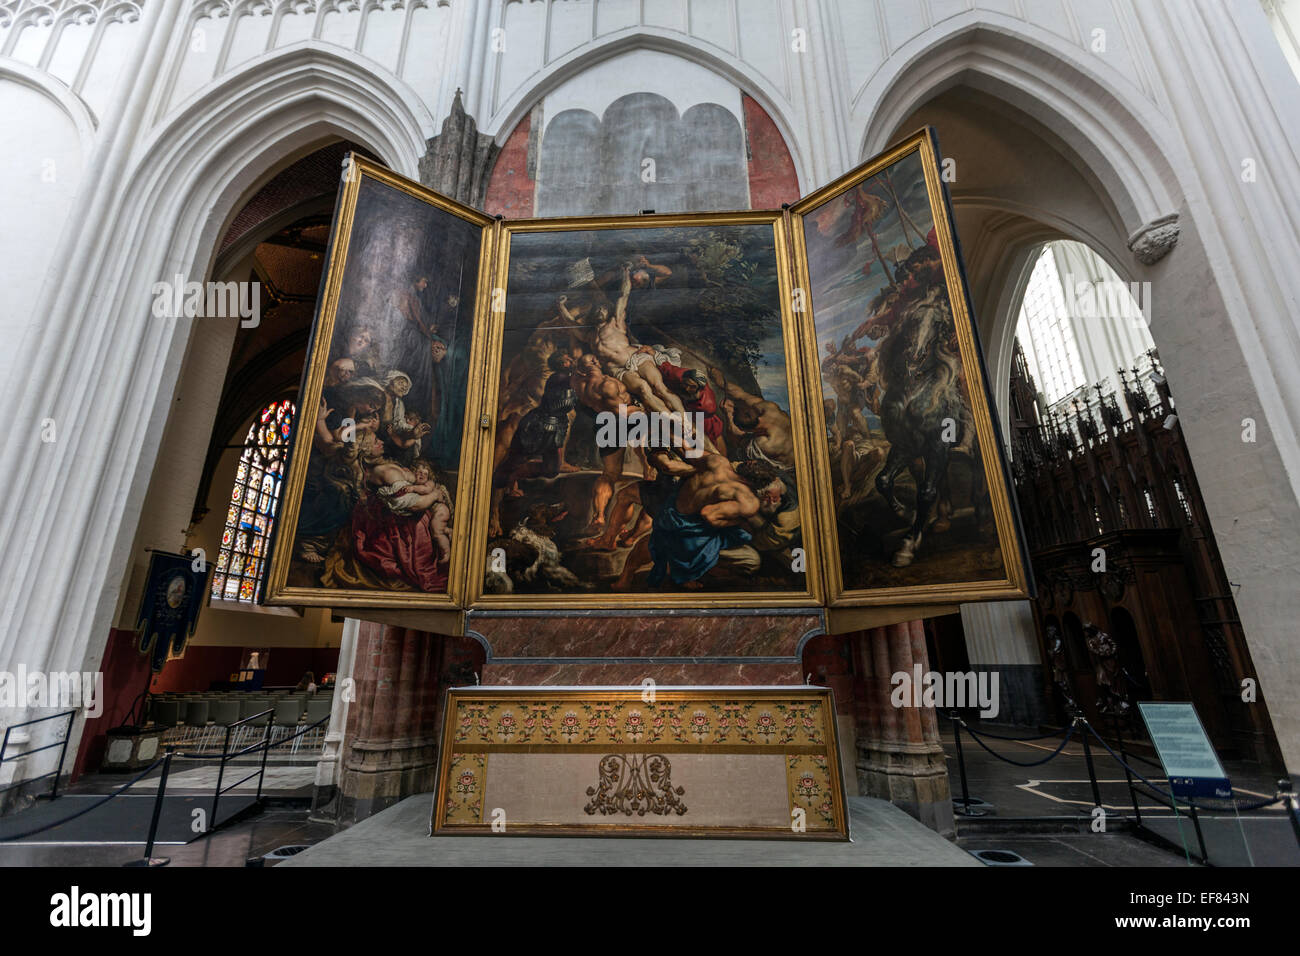 Elevation of the Cross, or The Raising of the Cross a triptych painting by Rubens Cathedral of Our Lady Antwerp, - Stock Image